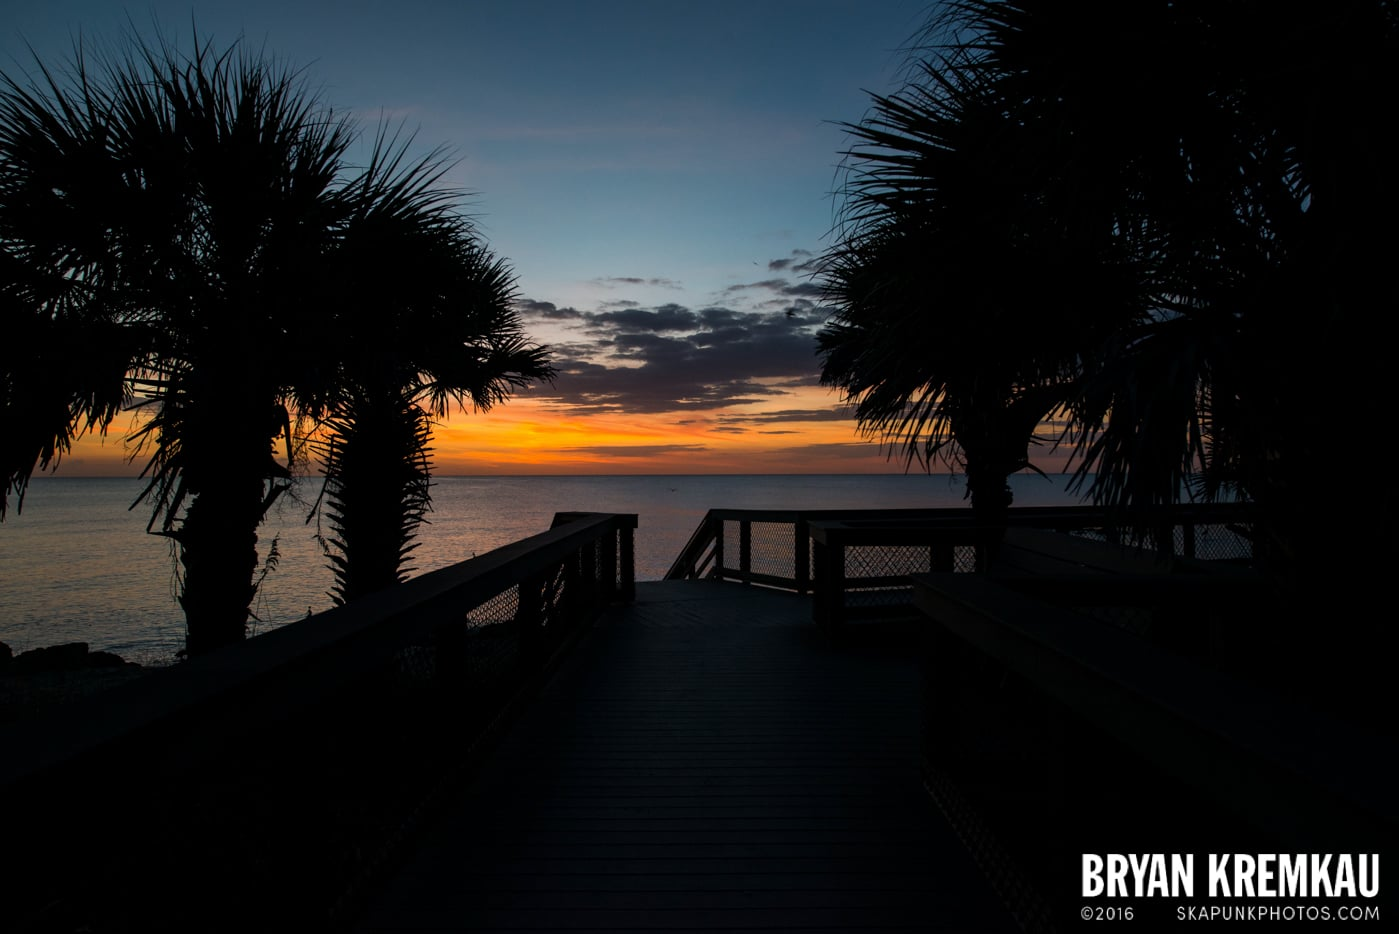 Sunsets, Astrophotography & Birds @ Venice, Florida - 10.25.14 - 11.5.14 (59)